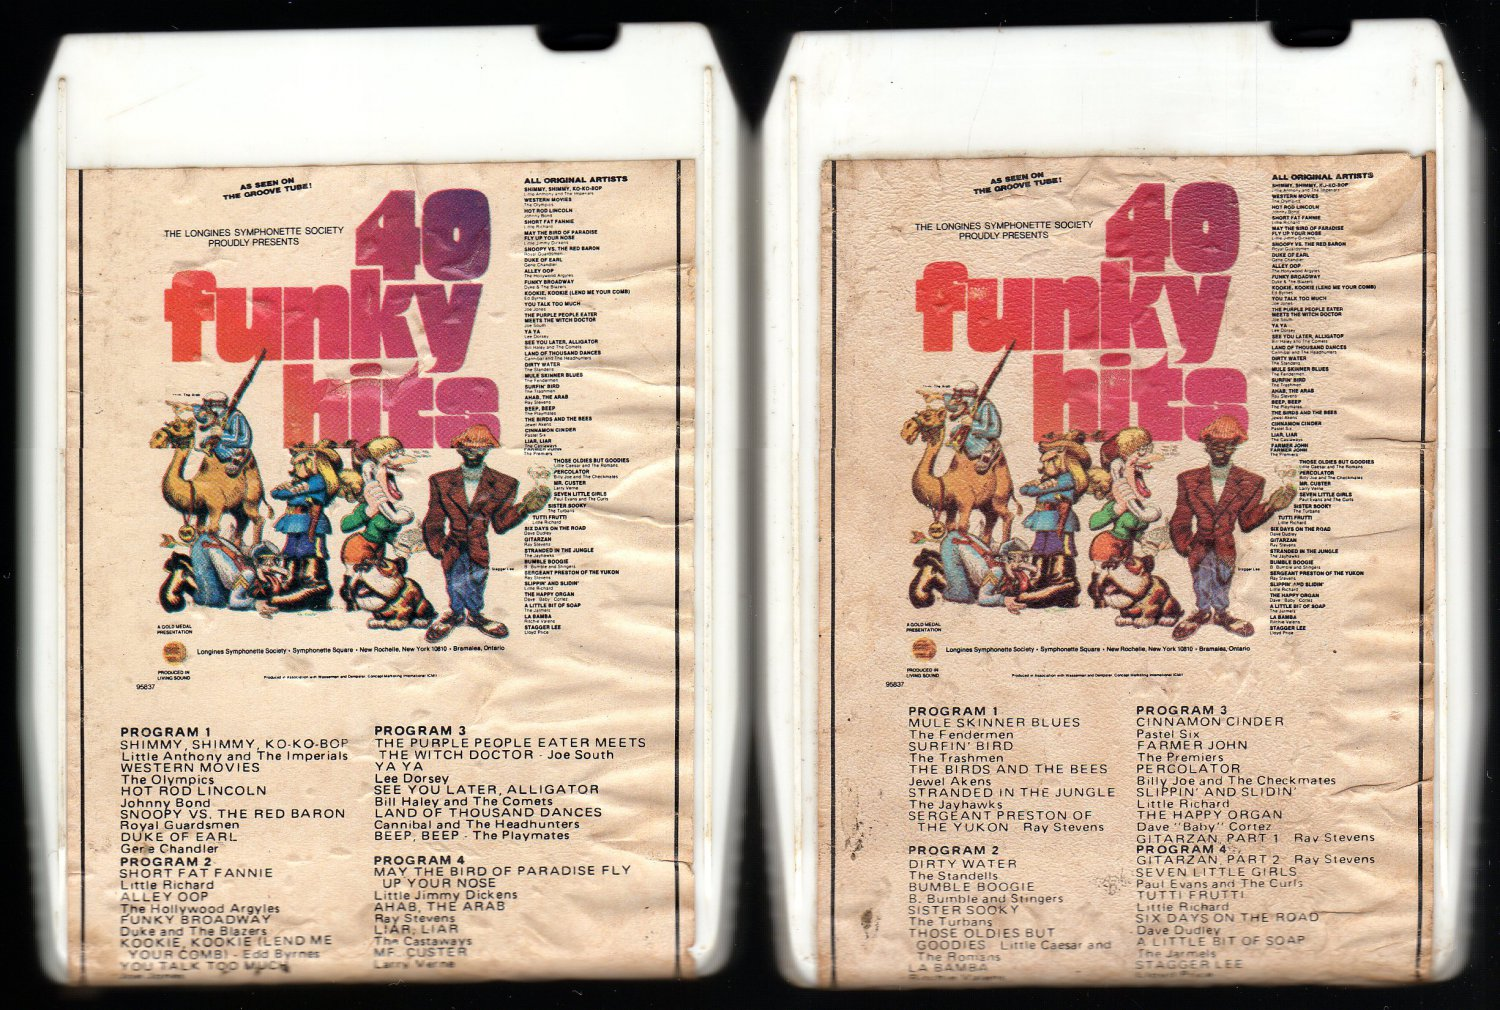 40 Funky Hits - Various Funky Pop Hits Part A & B 1974 LONGINES A28 8-TRACK TAPES